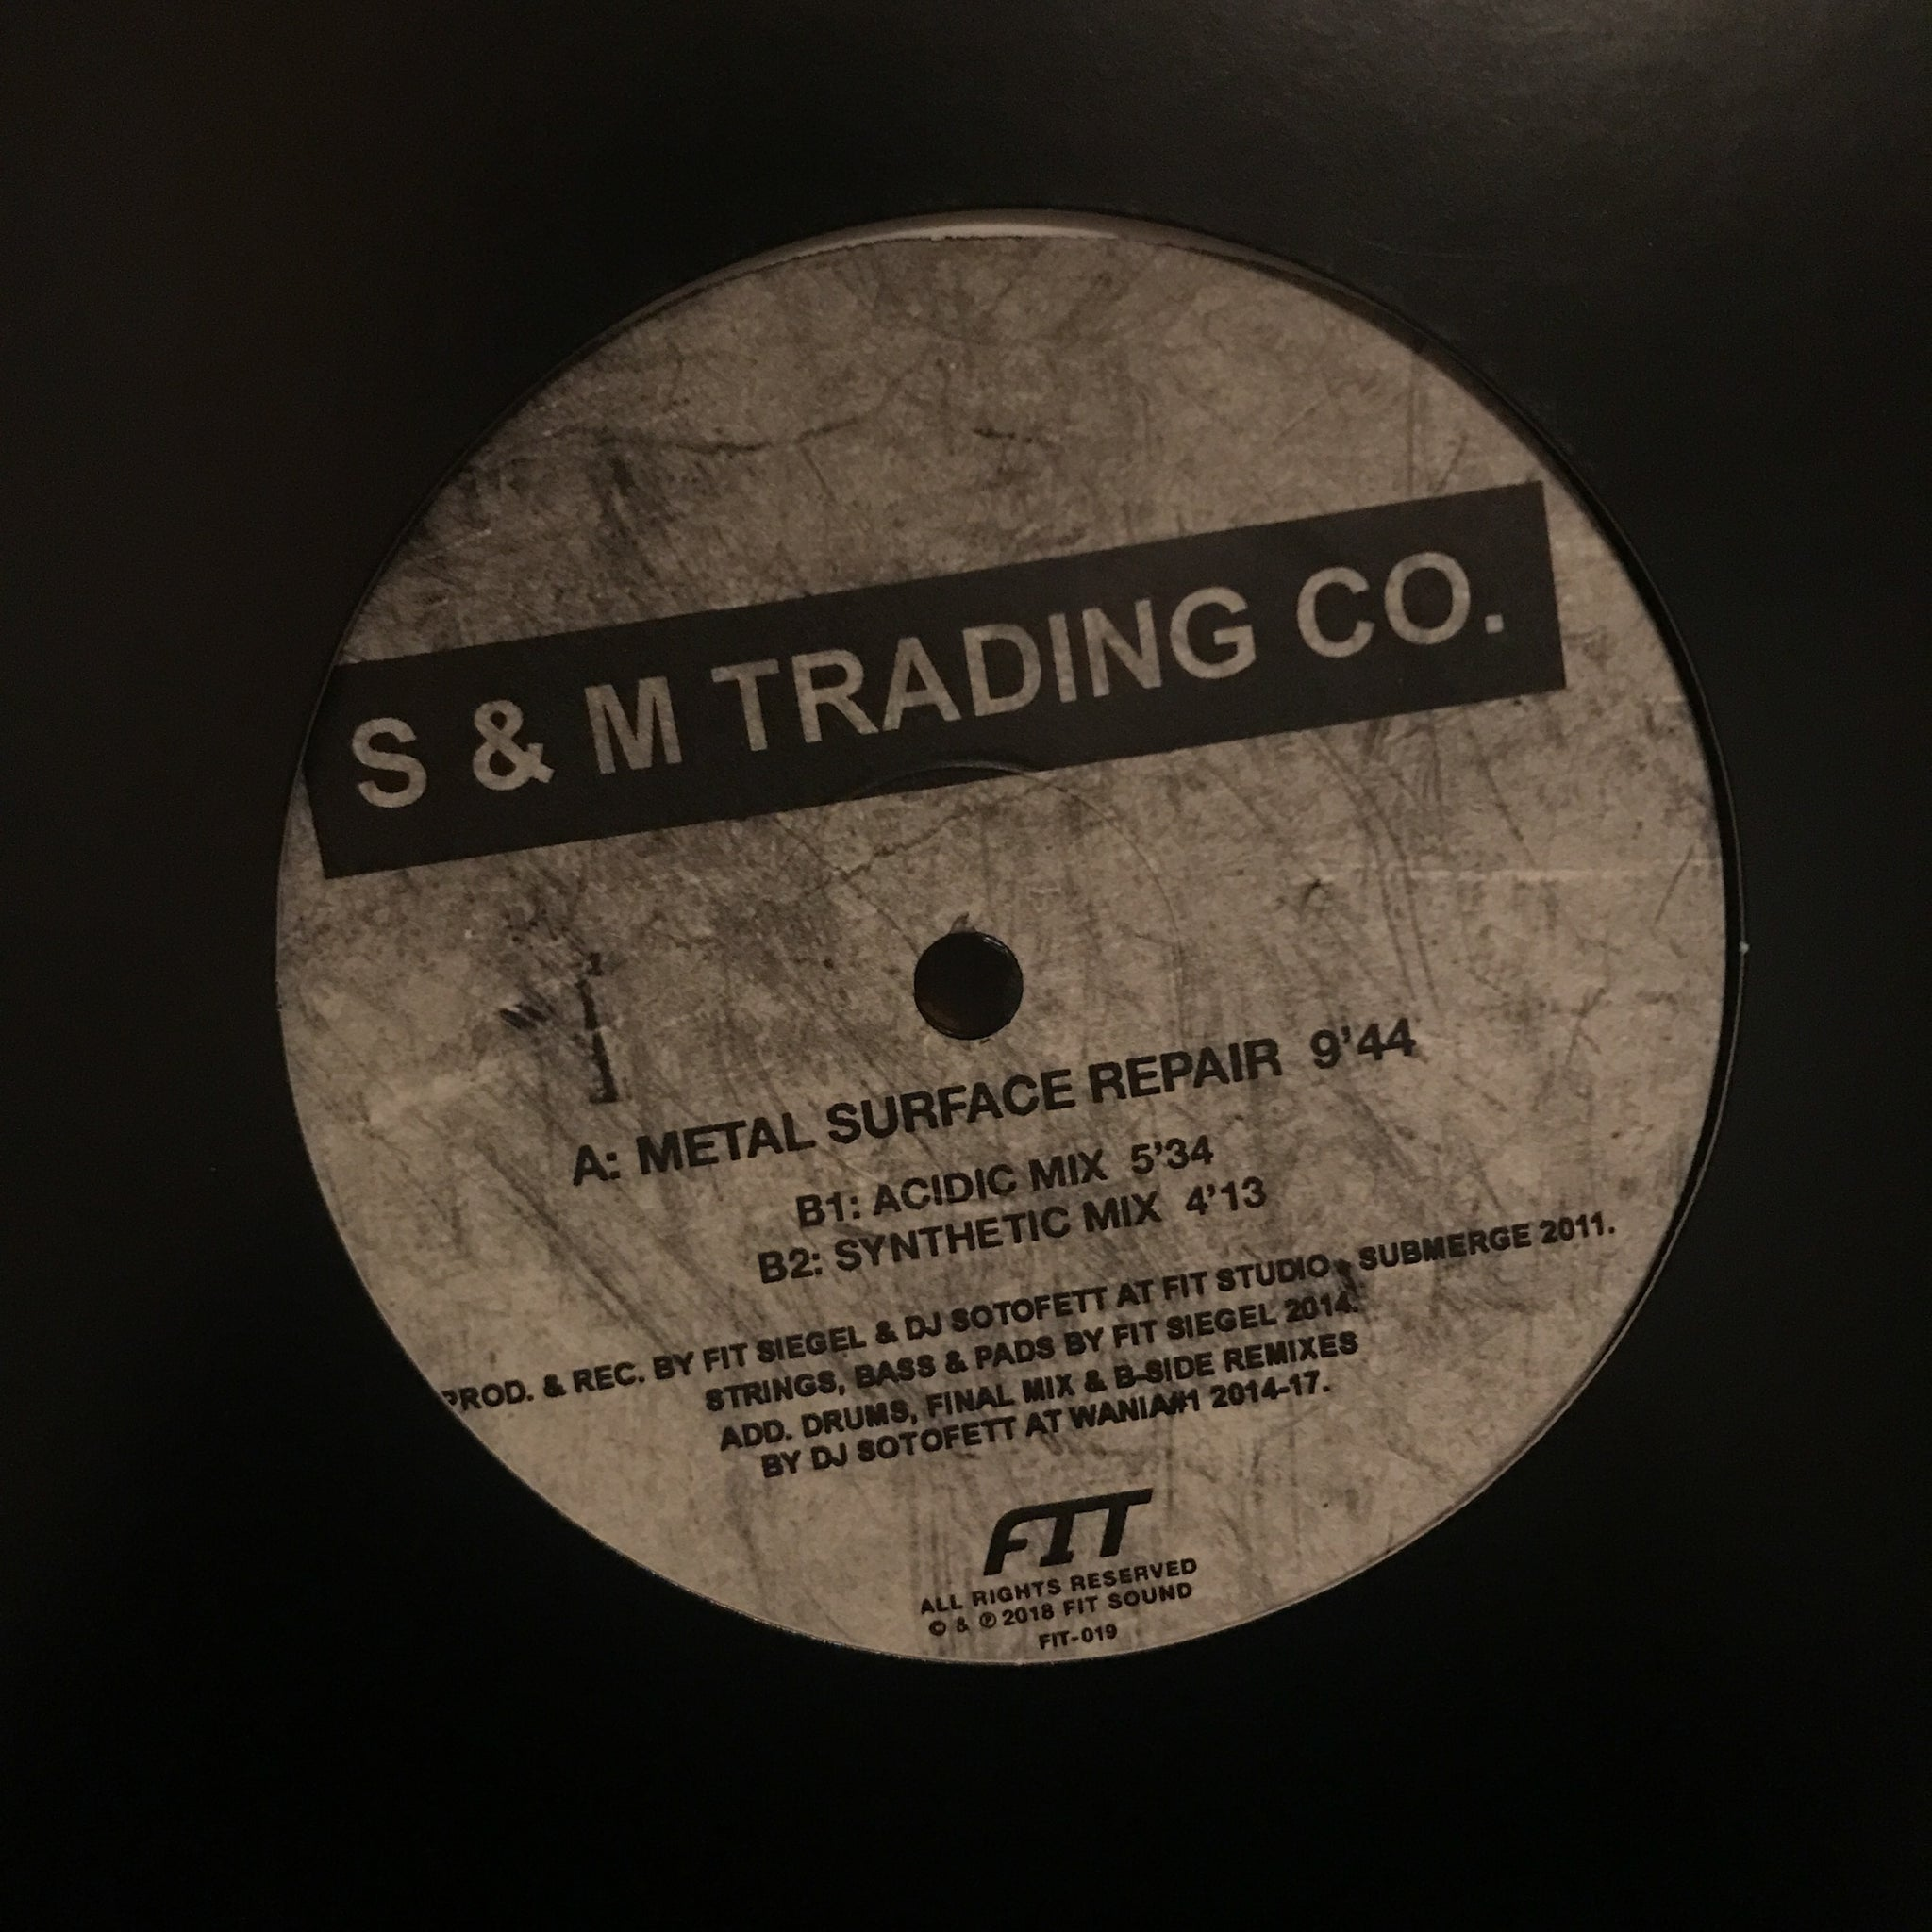 S & M Trading Co. ‎– Metal Surface Repair